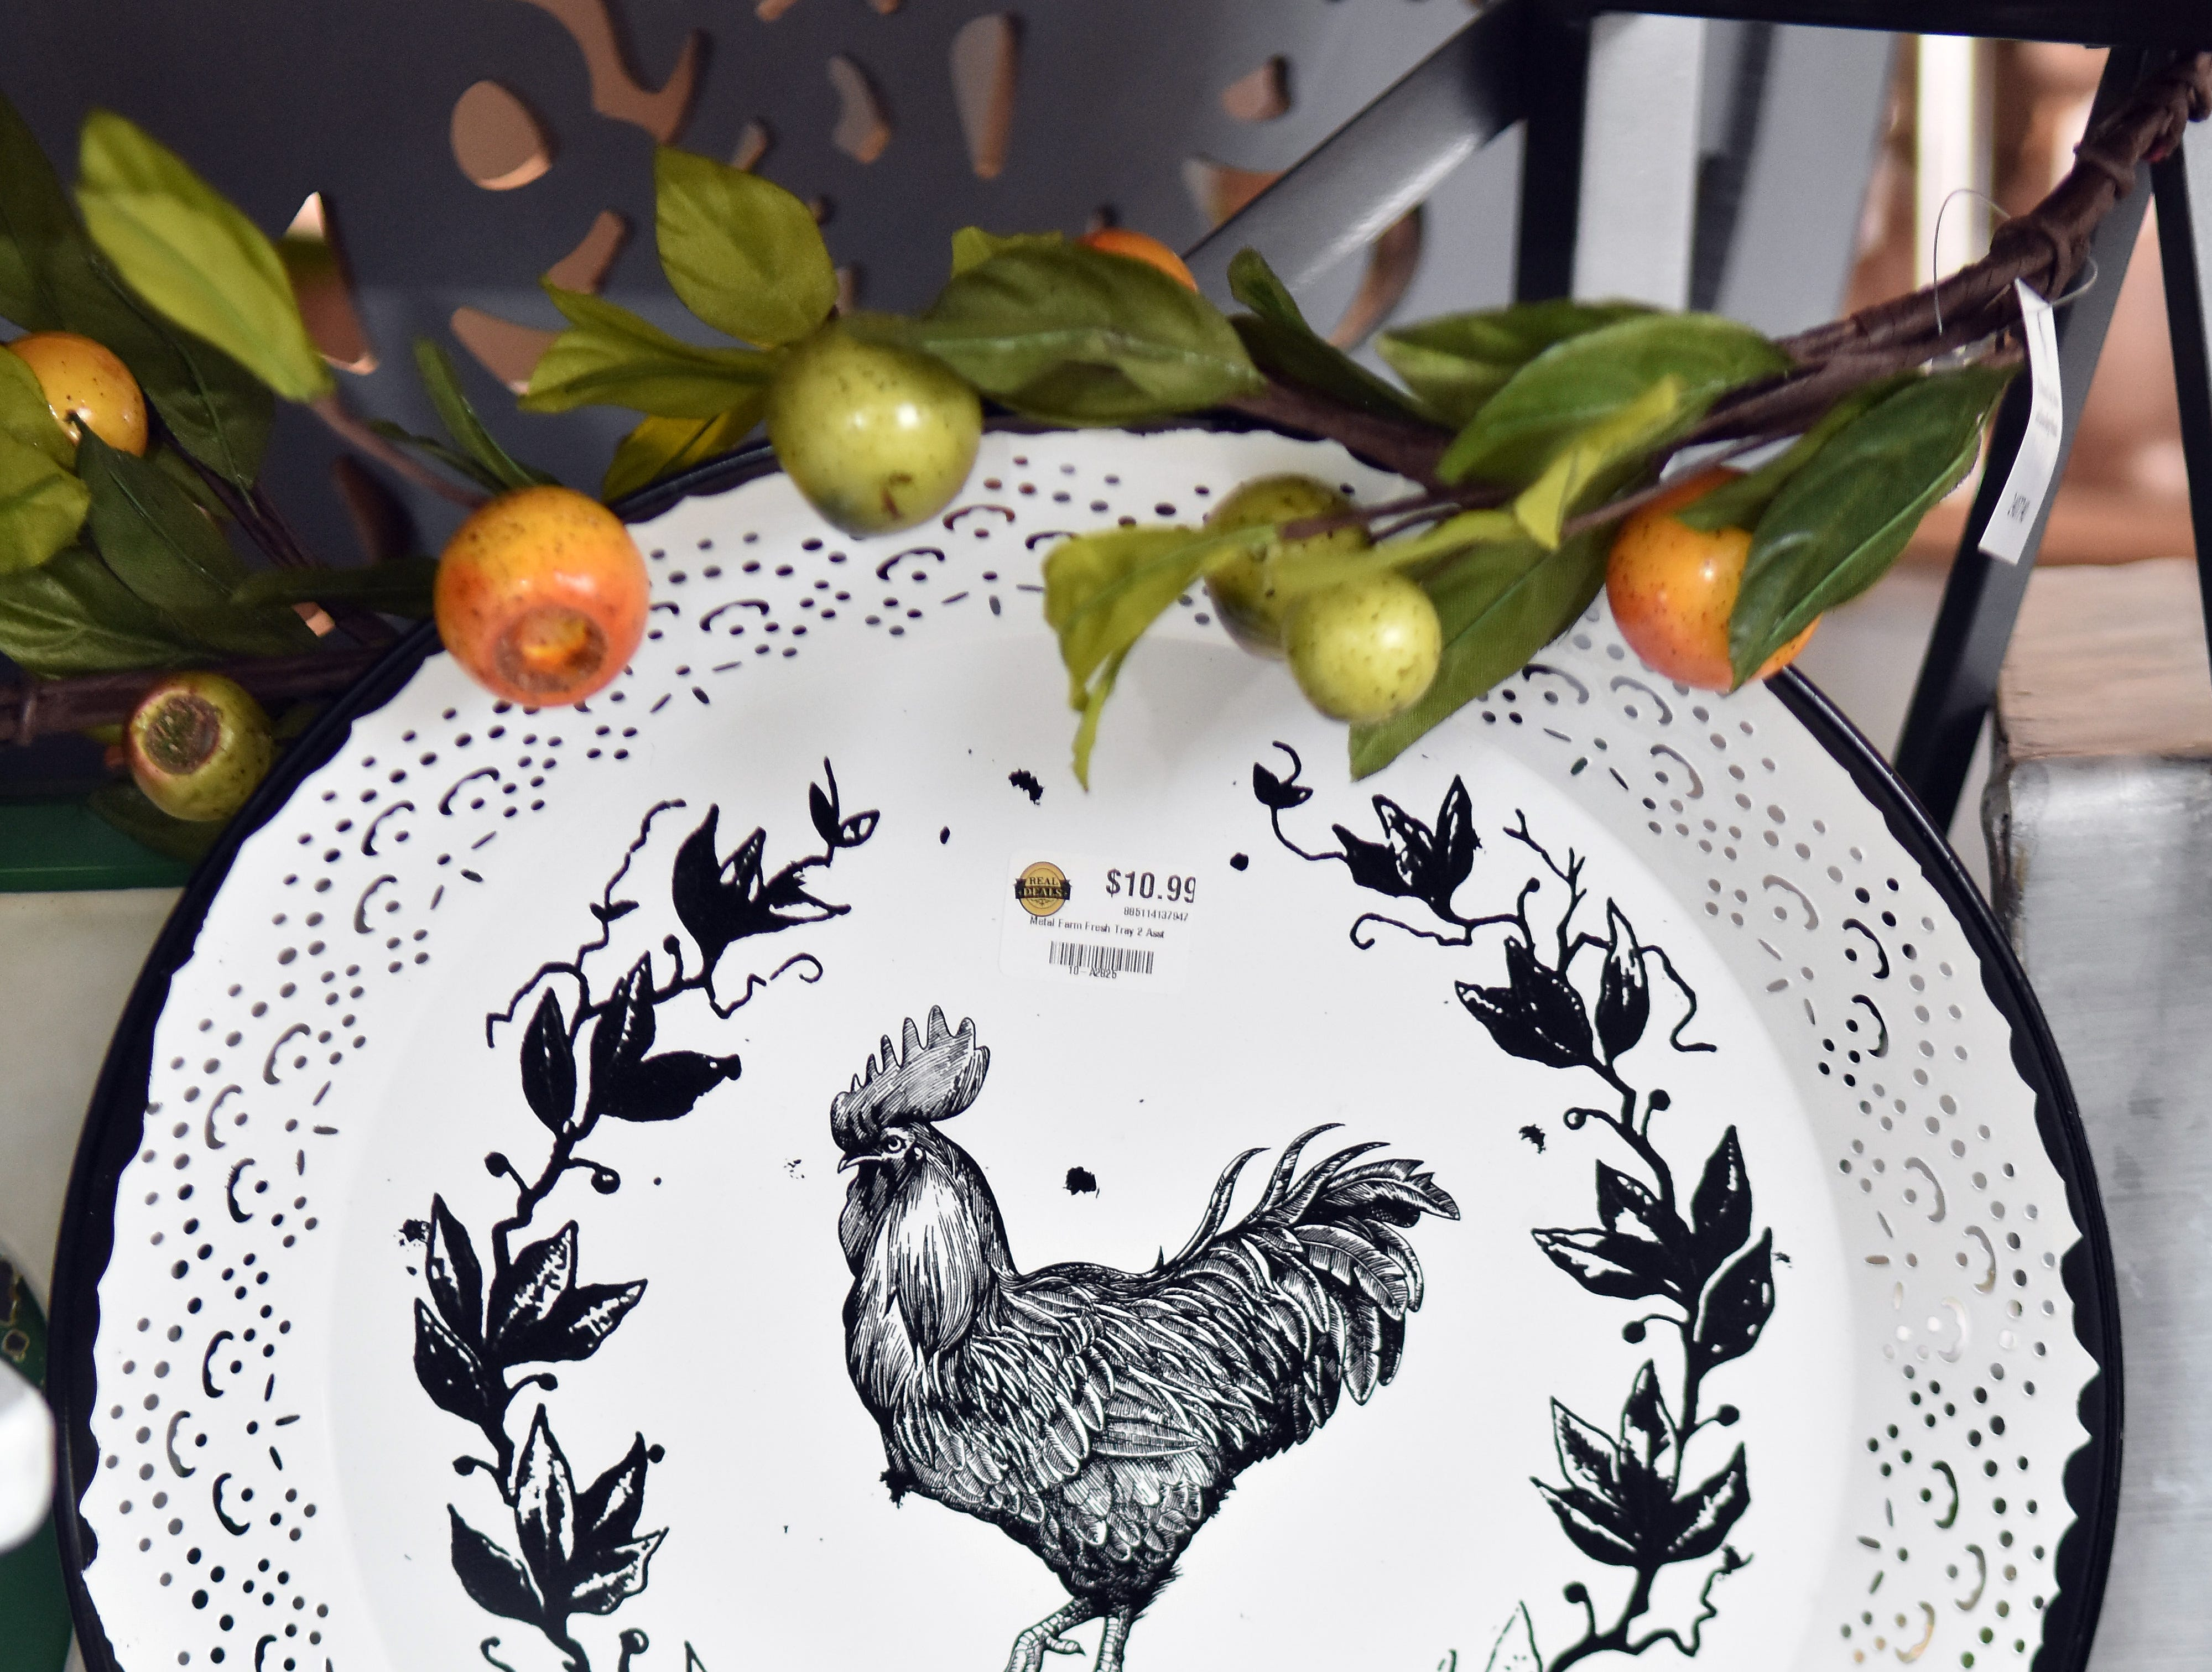 Kim Severence at Real Deals combines just a touch of color with this striking black and white rooster plate.